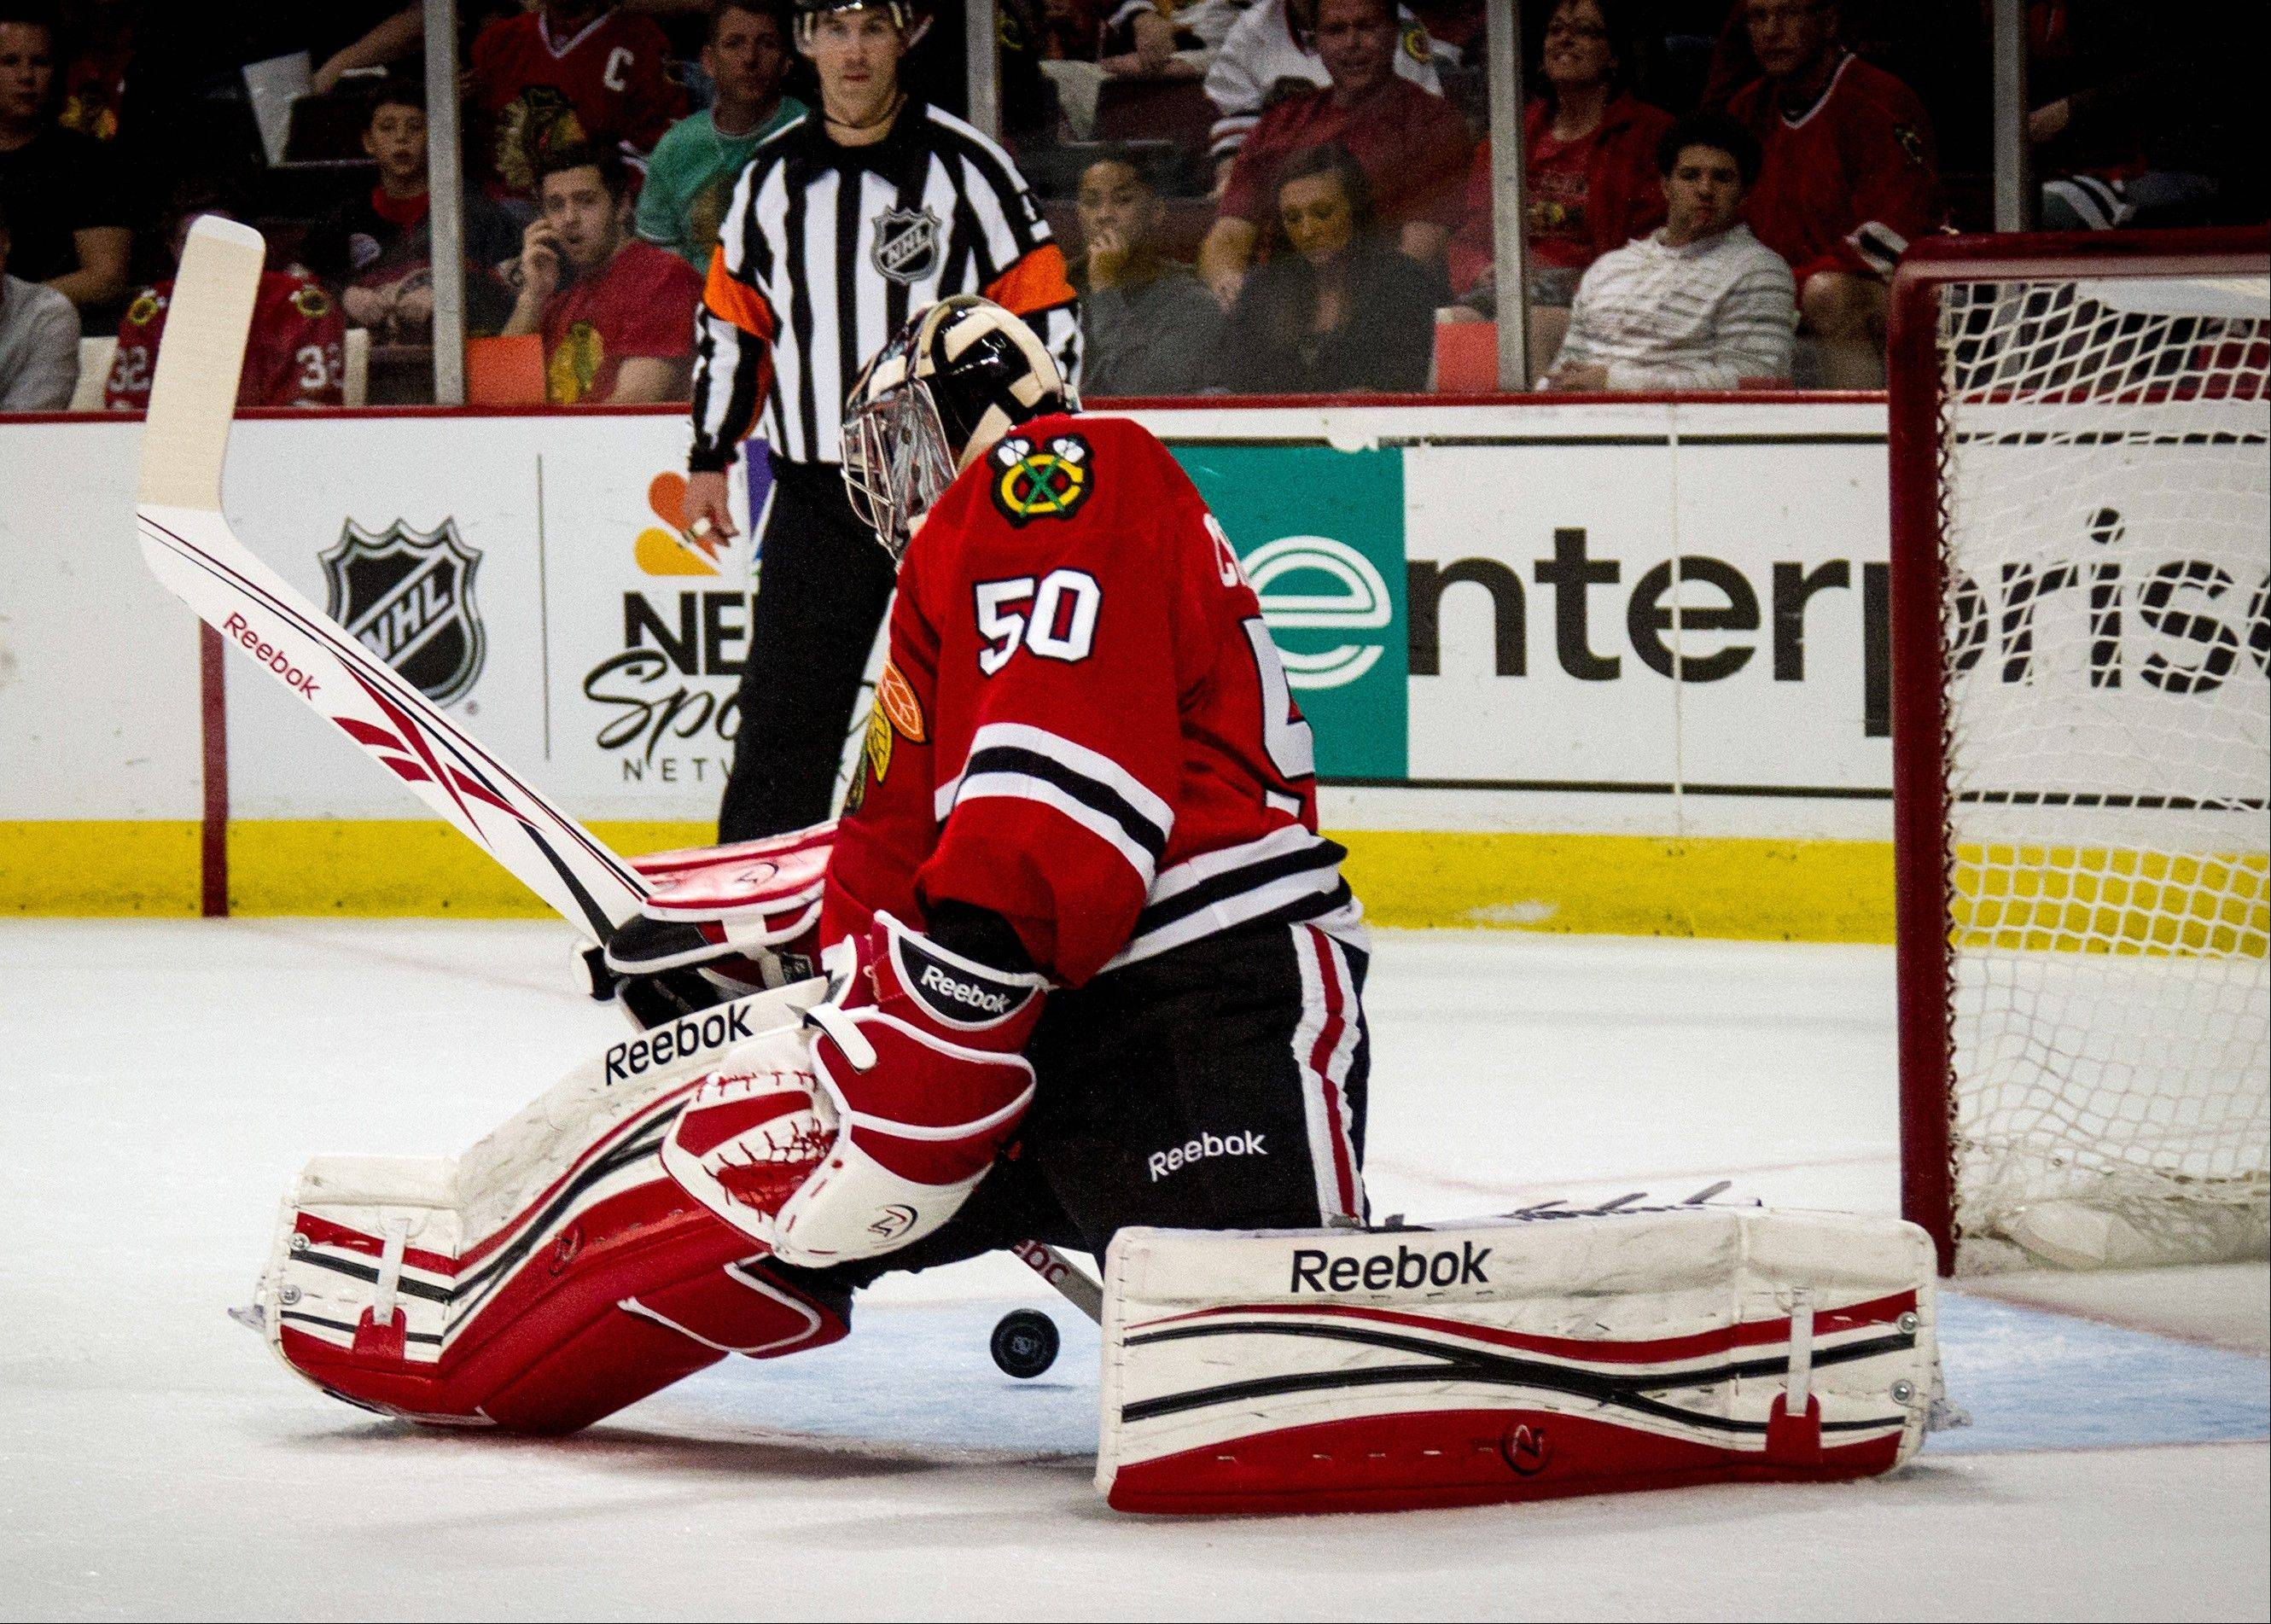 Chicago Blackhawks goalie Corey Crawford finds puck behind him and makes the save during the first period against the Washington Capitals in an NHL hockey game in Chicago on Sunday, March 18, 2012.